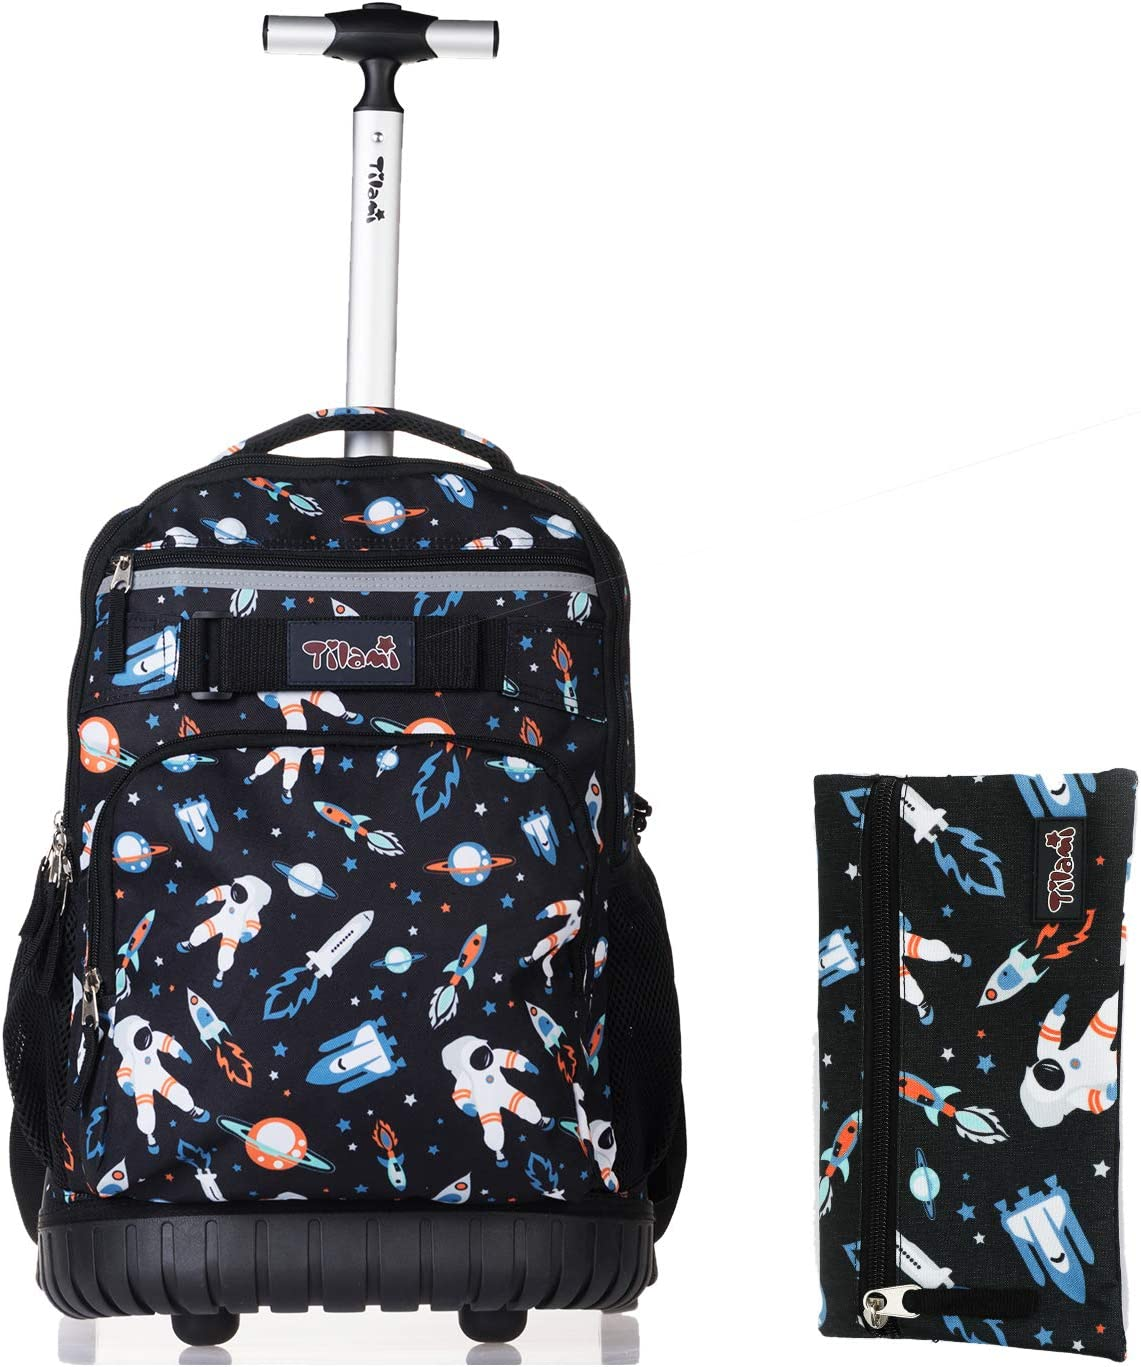 Tilami Rolling Backpack 18 inch with Pencil Case Wheeled Laptop Bag, Astronaut